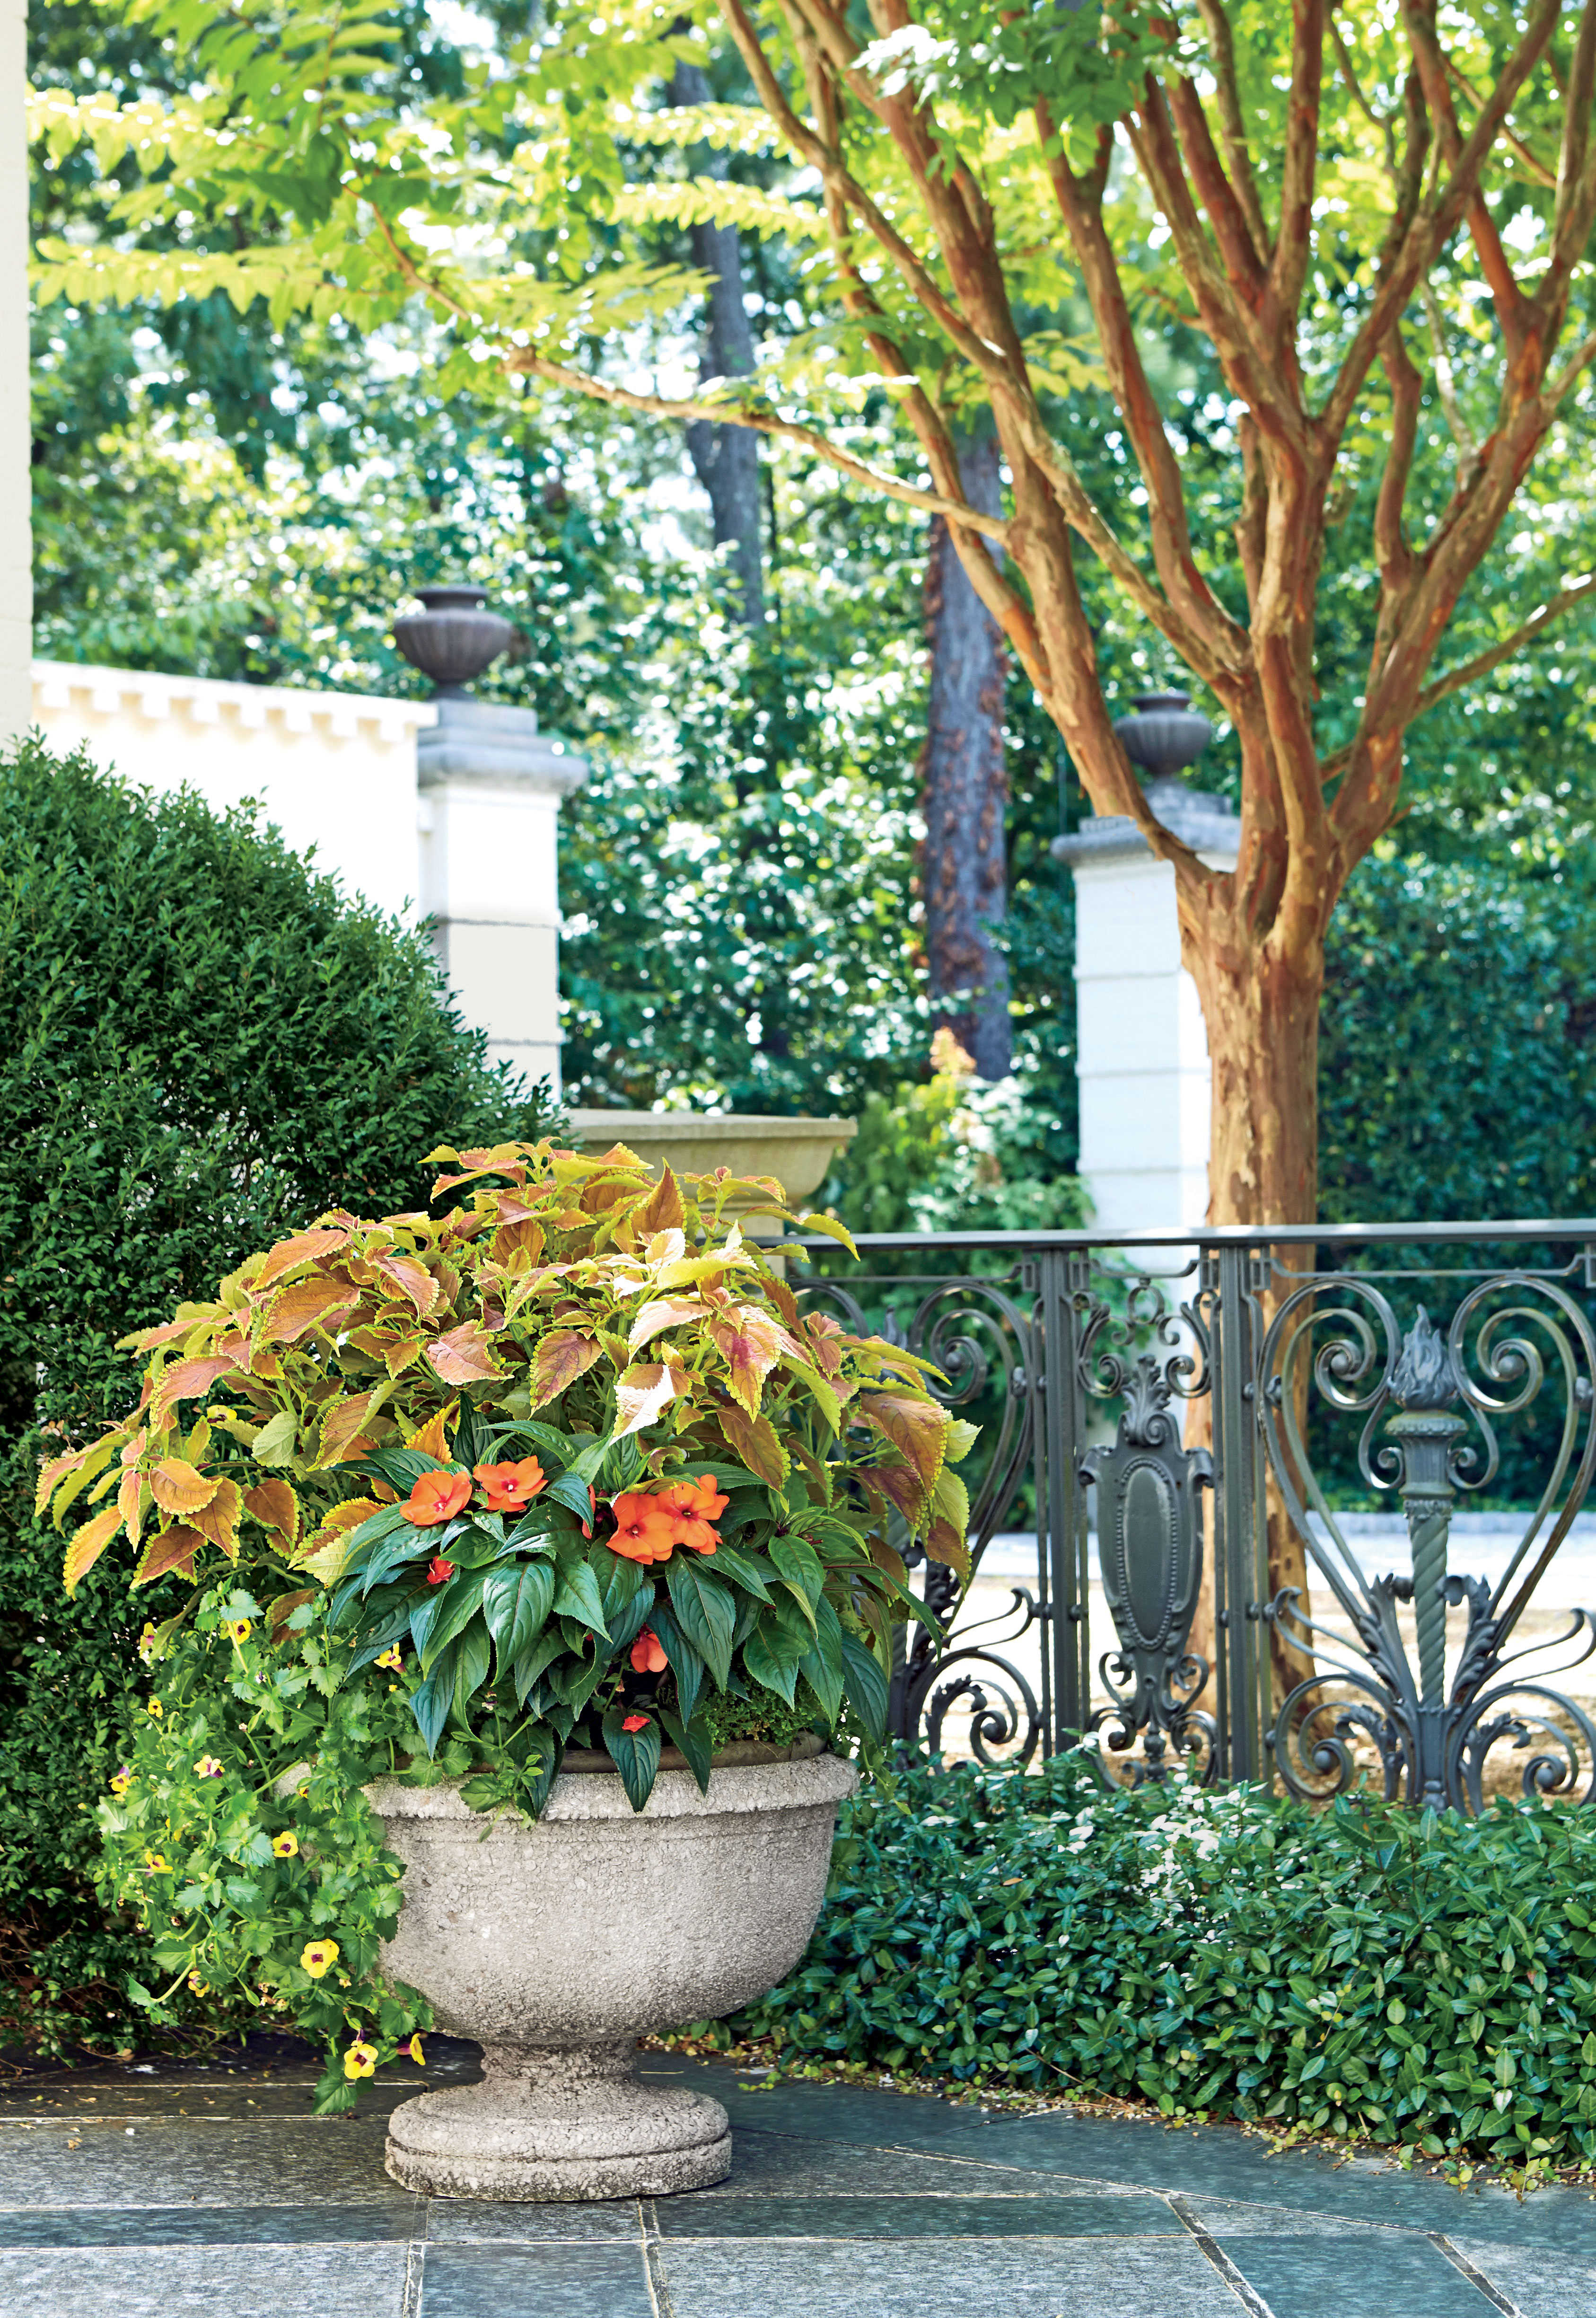 spring garden dating site Cheshire cottage garden plants is a family run plant nursery search this site home the flowering currant is a reliable performer for the spring garden.